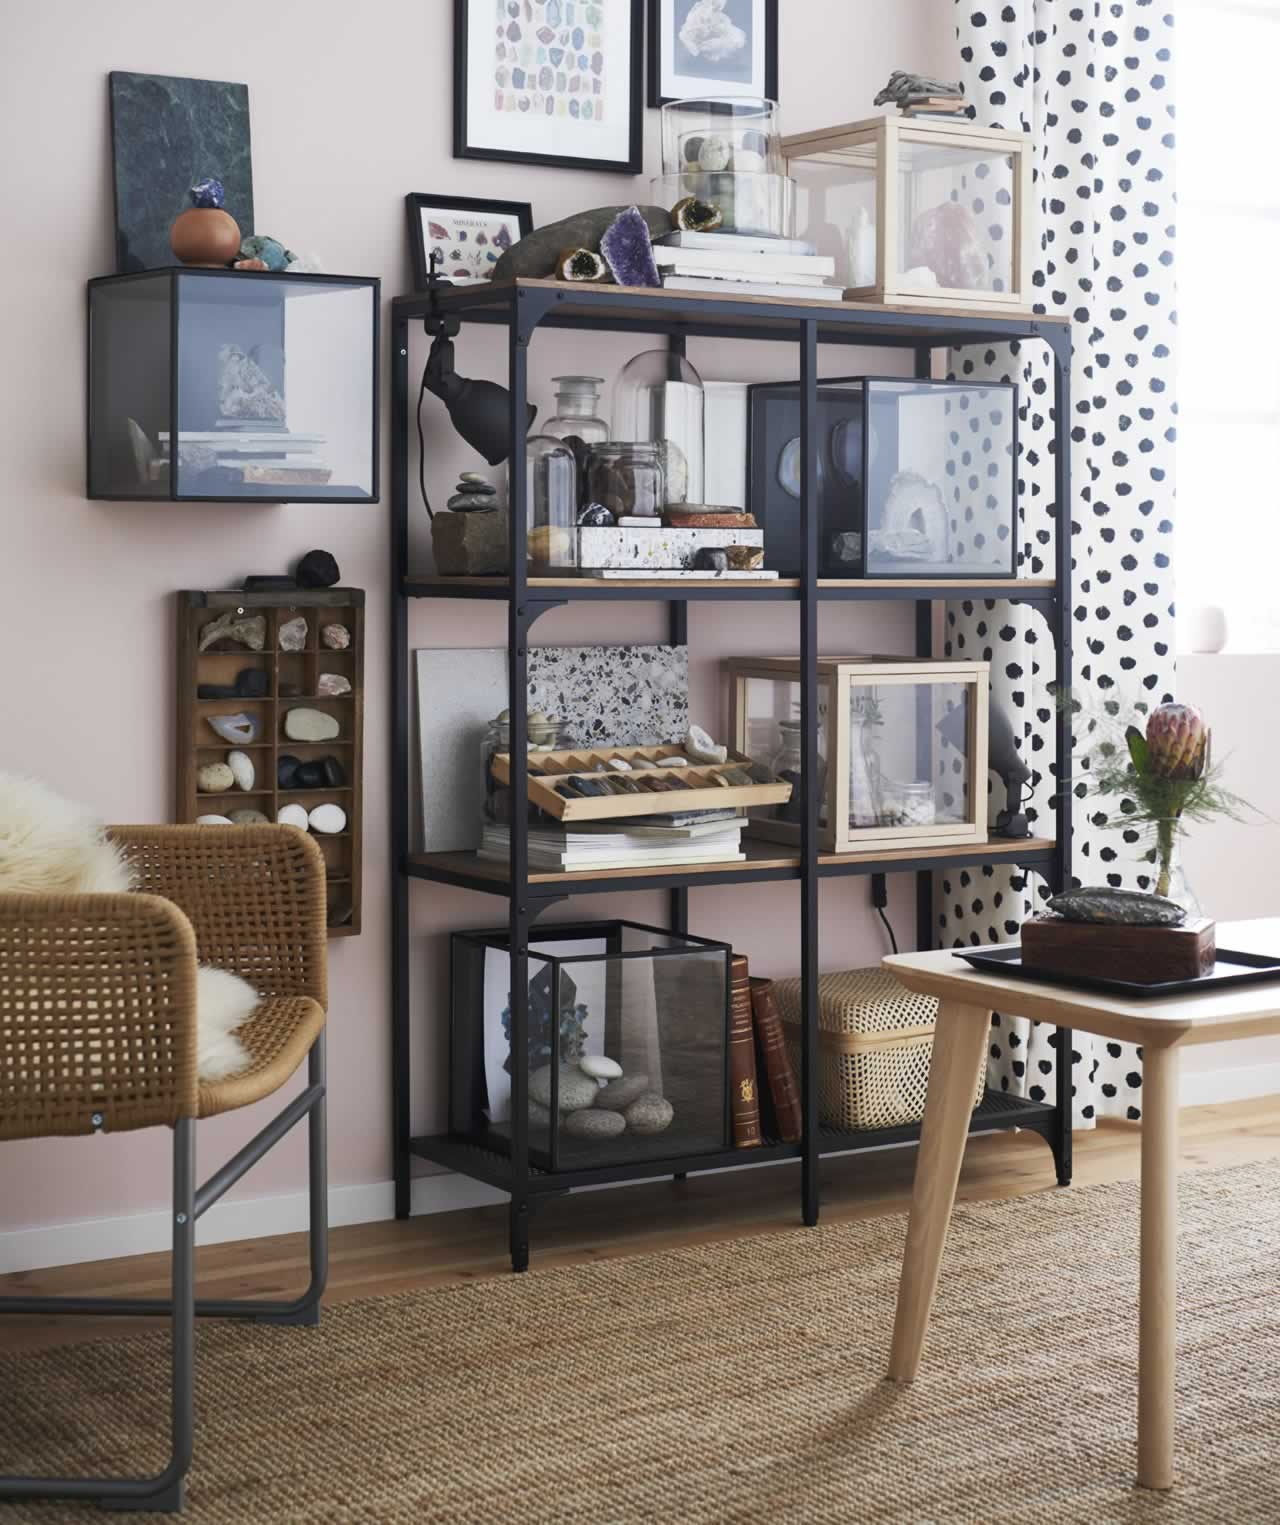 IKEA Ideas - Your shelf, your self